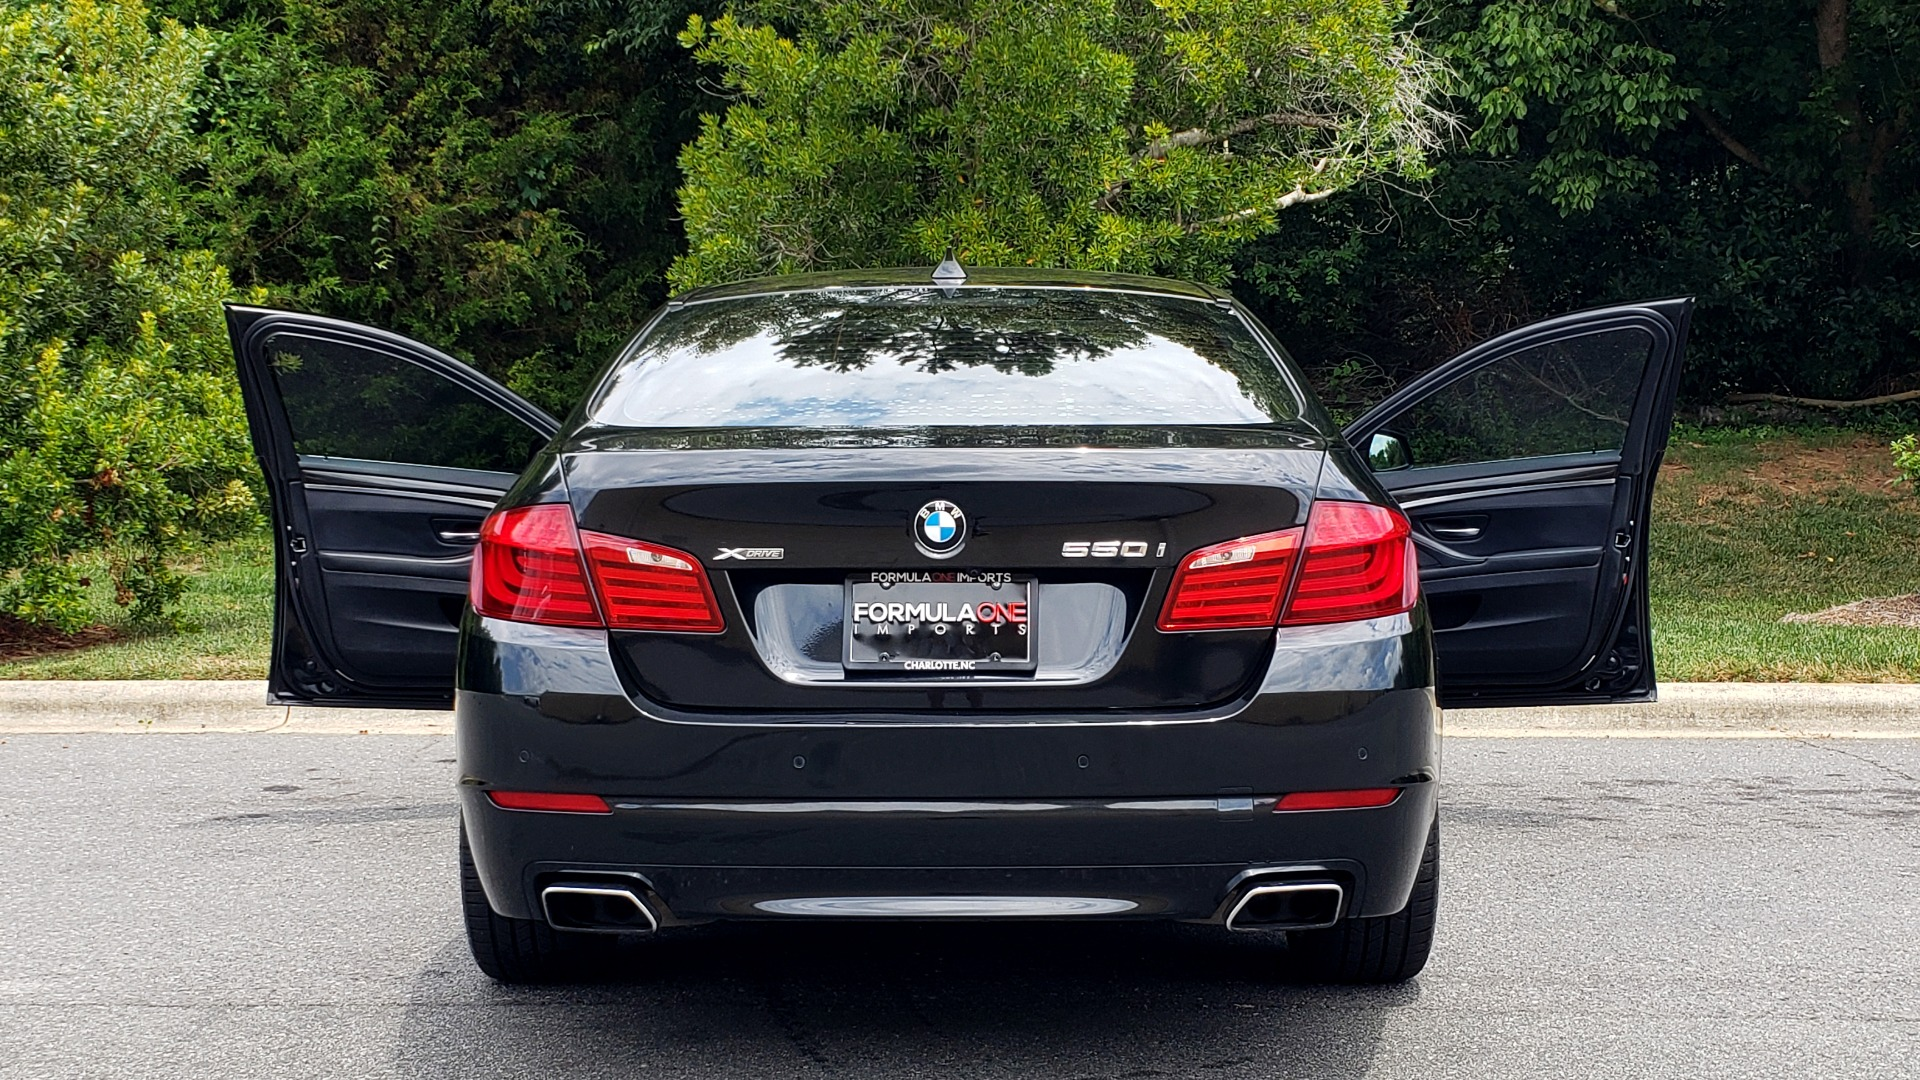 Used 2013 BMW 5 SERIES 550I XDRIVE LUX PKG / EXEC / COLD WTHR / NAV / SUNROOF / REARVIEW for sale Sold at Formula Imports in Charlotte NC 28227 23